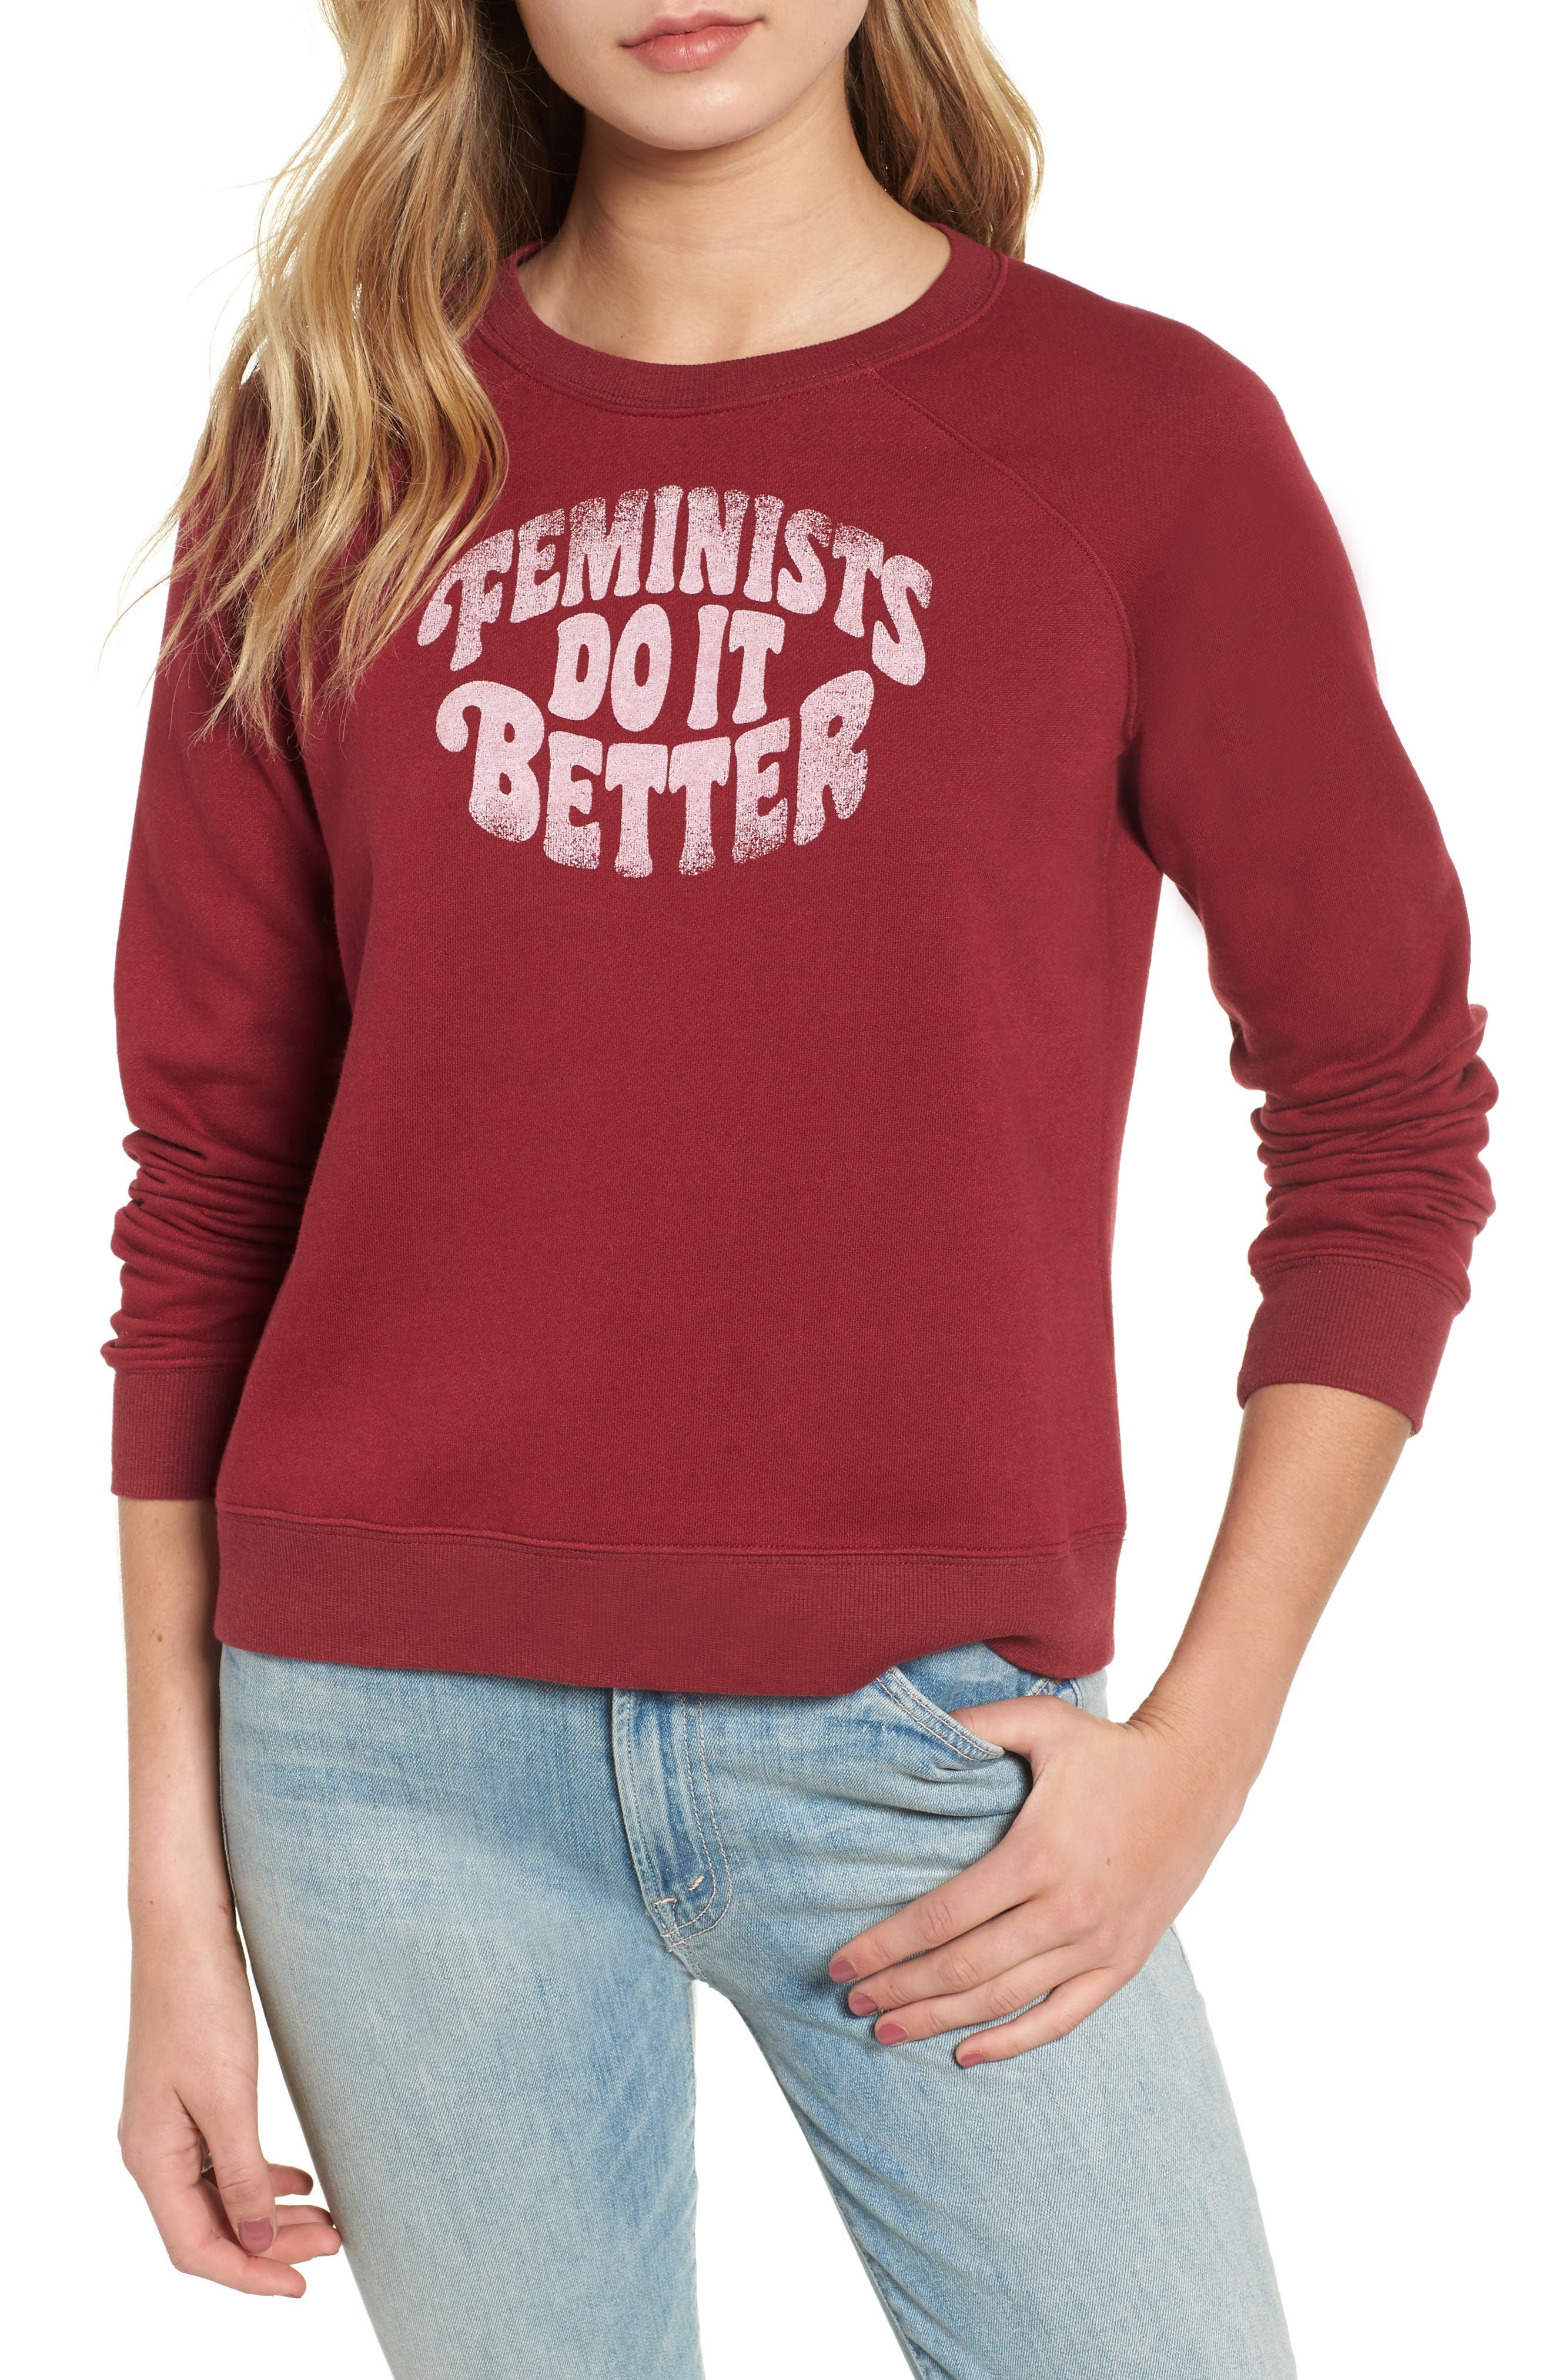 Jennings Feminists Do It Better Sweatshirt,                             Main thumbnail 1, color,                             DARK RED/ WHITE